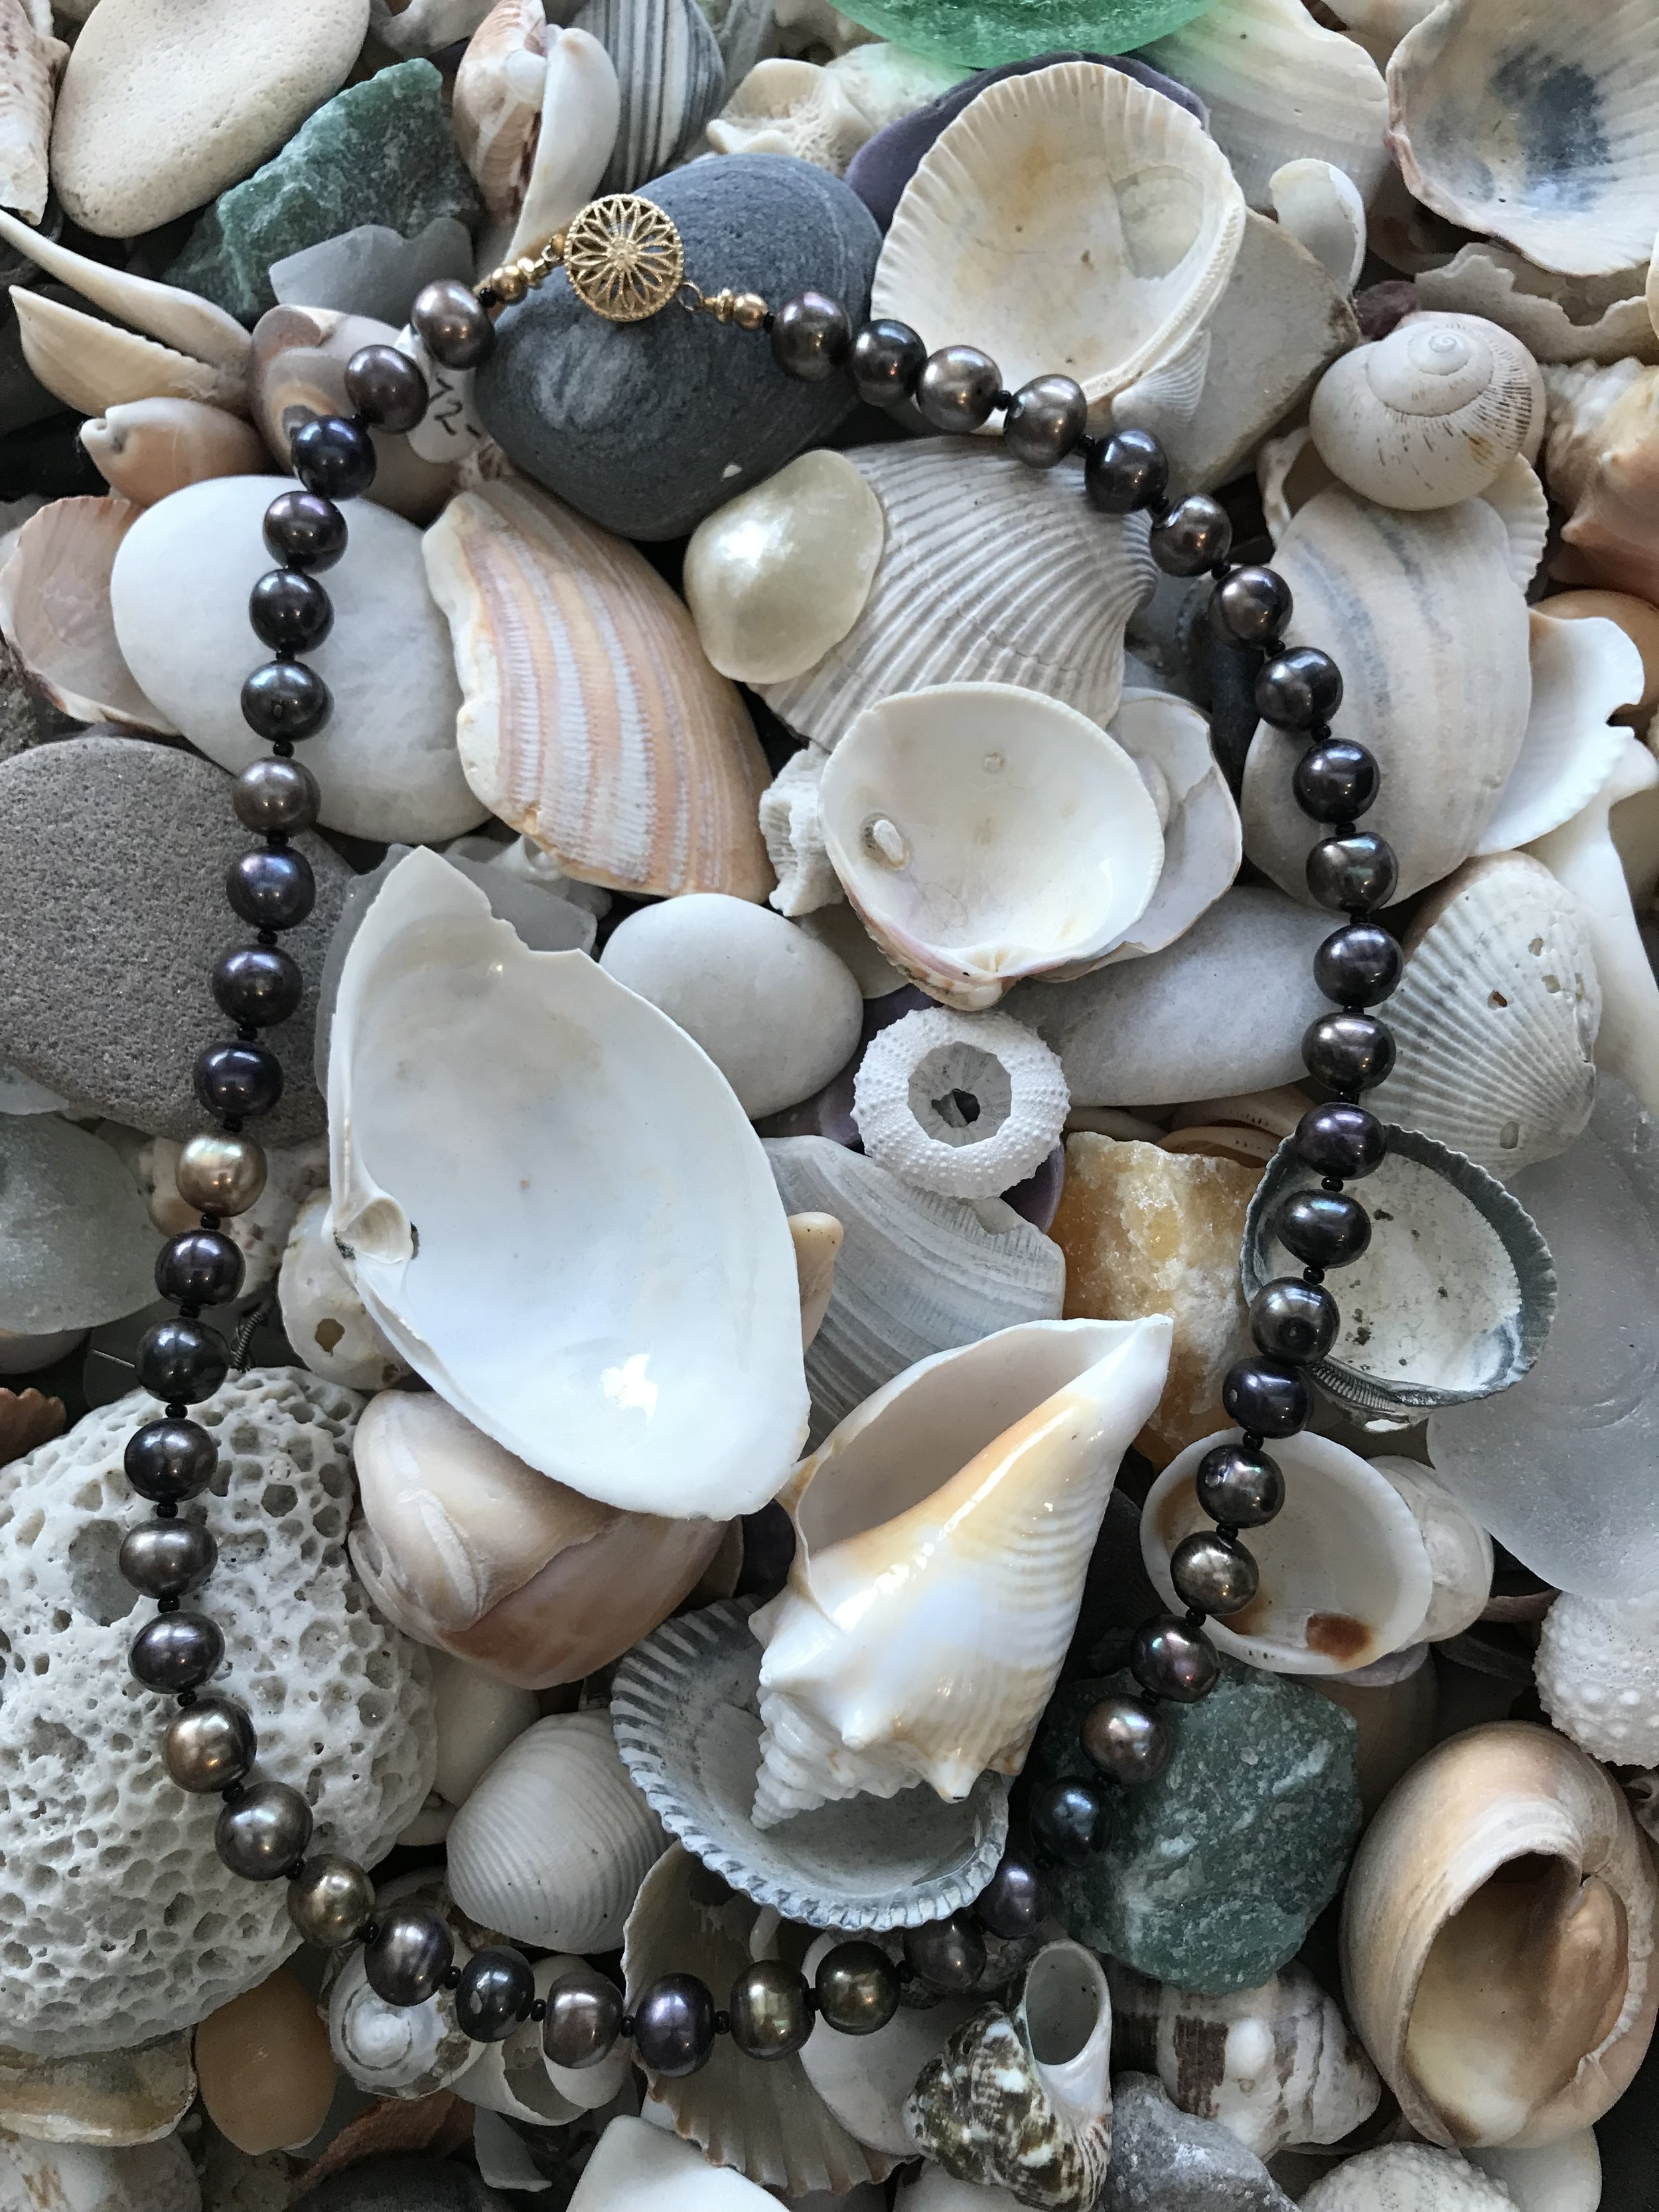 Basic Beading 101:  Learn the basics of beading. You will create a simple necklace, bracelet or anklet in this one hour workshop. This is a beginner class. Ages 10 and up. Class size is limited to 5 students. $35.00 plus materials